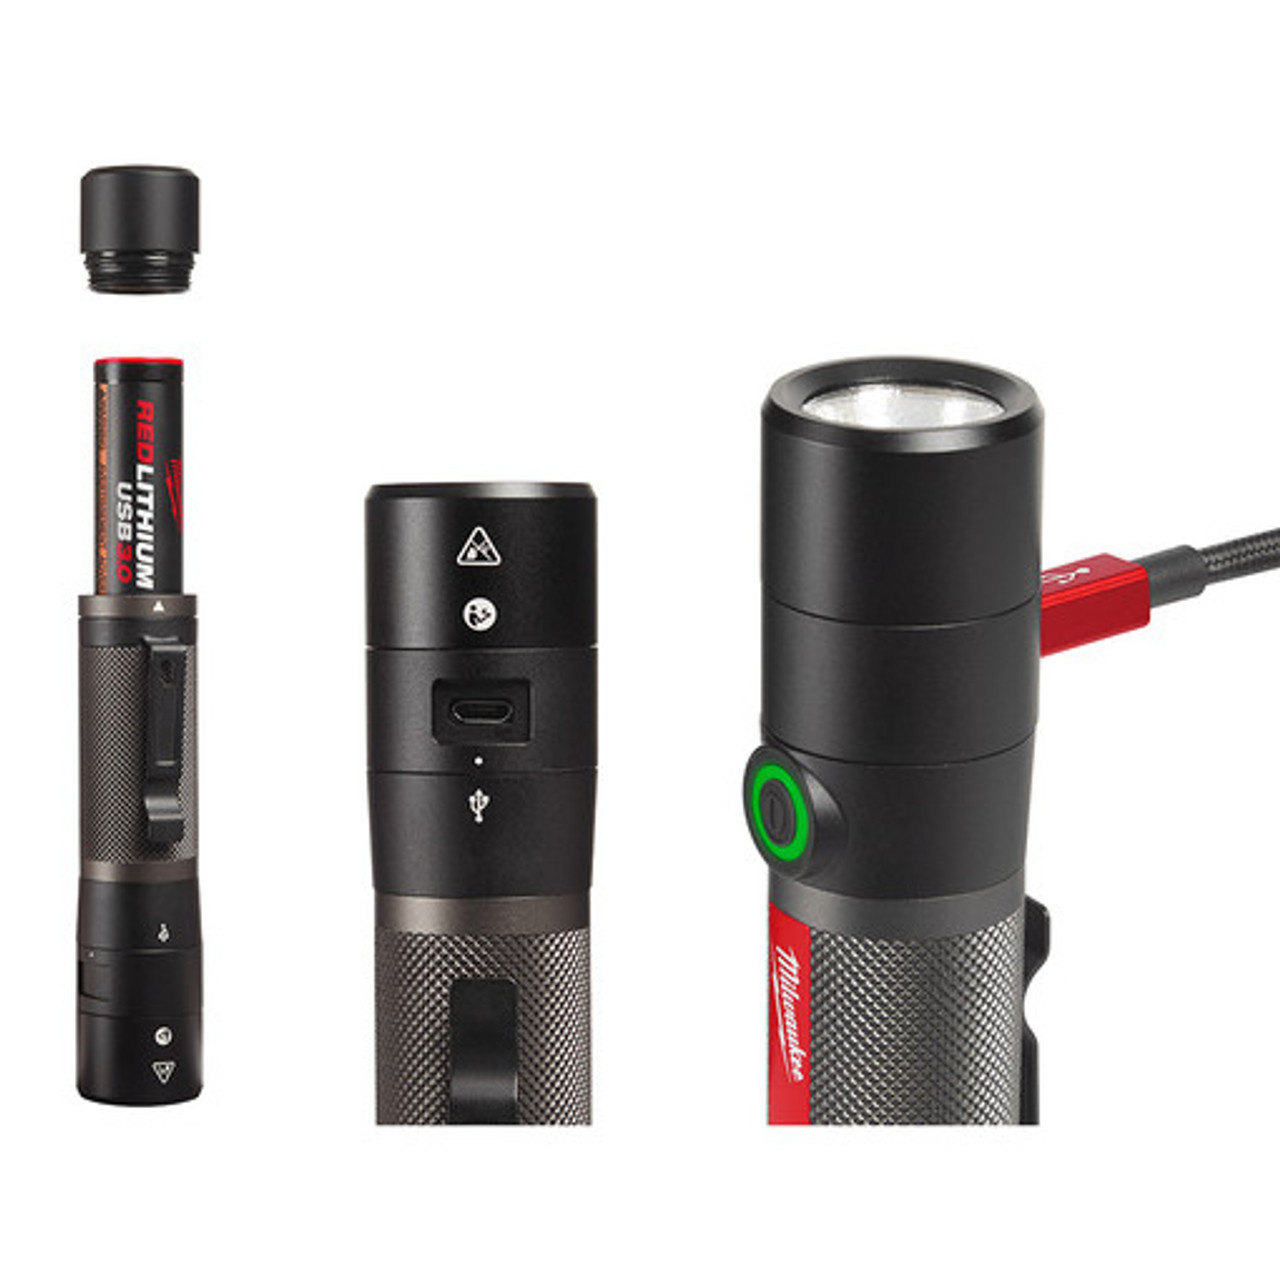 Milwaukee 2160-21 USB Rechargeable 800L Compact Flashlight